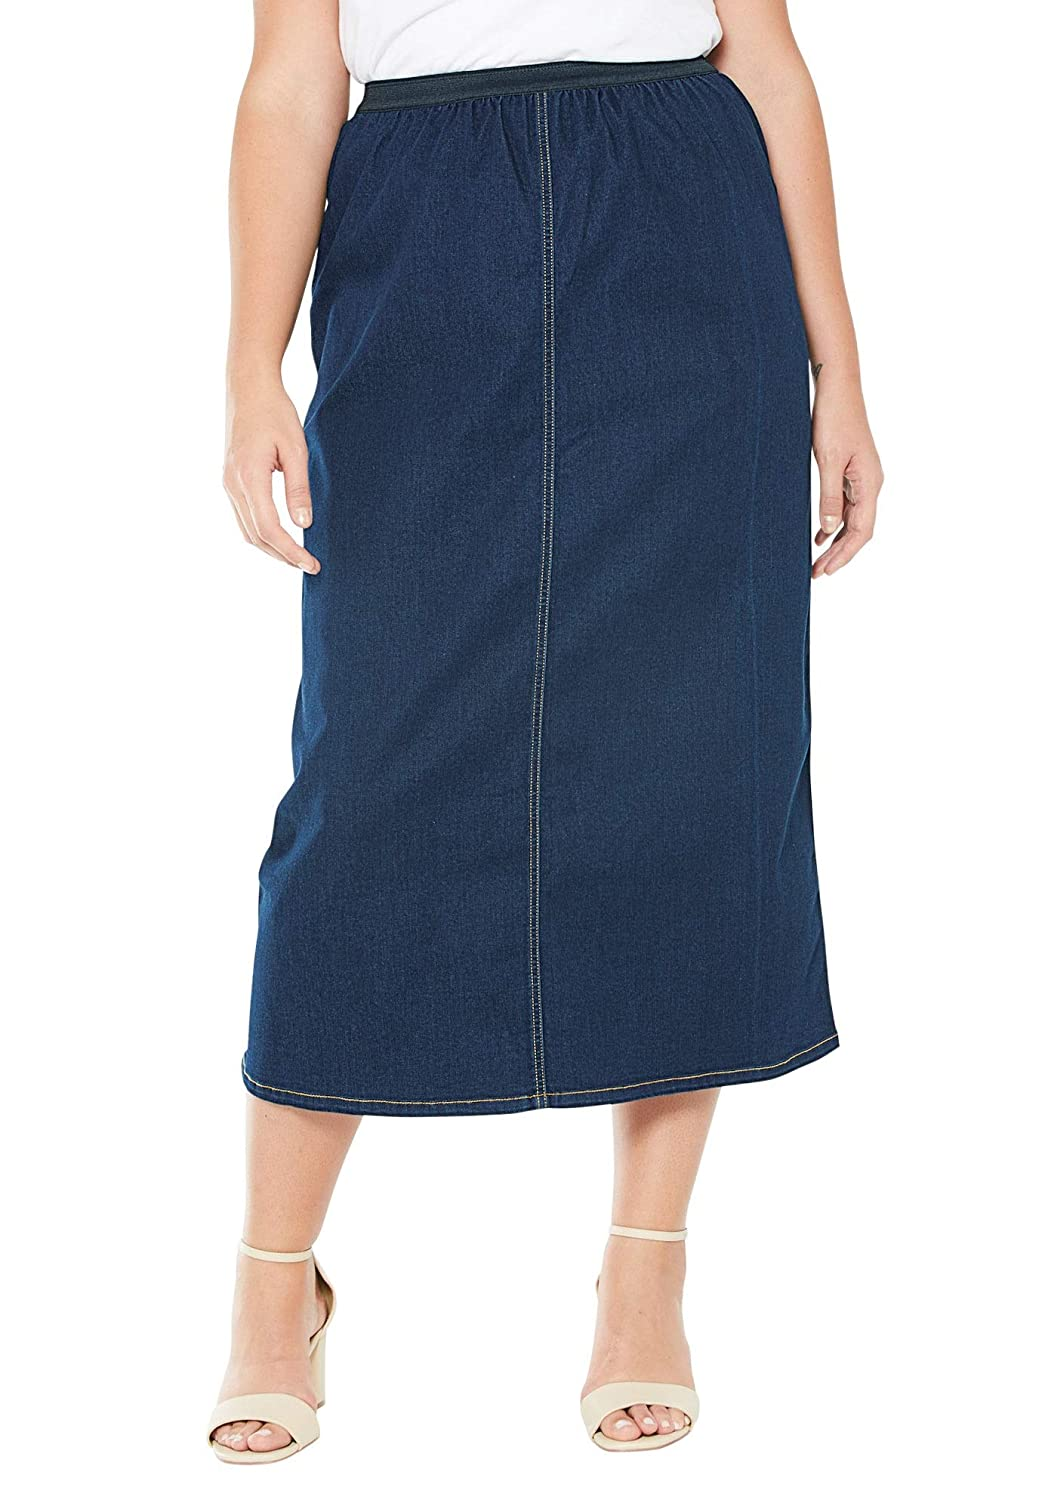 Jessica London SKIRT レディース B07823RNLD 26 Plus|Indigo Wash Indigo Wash 26 Plus